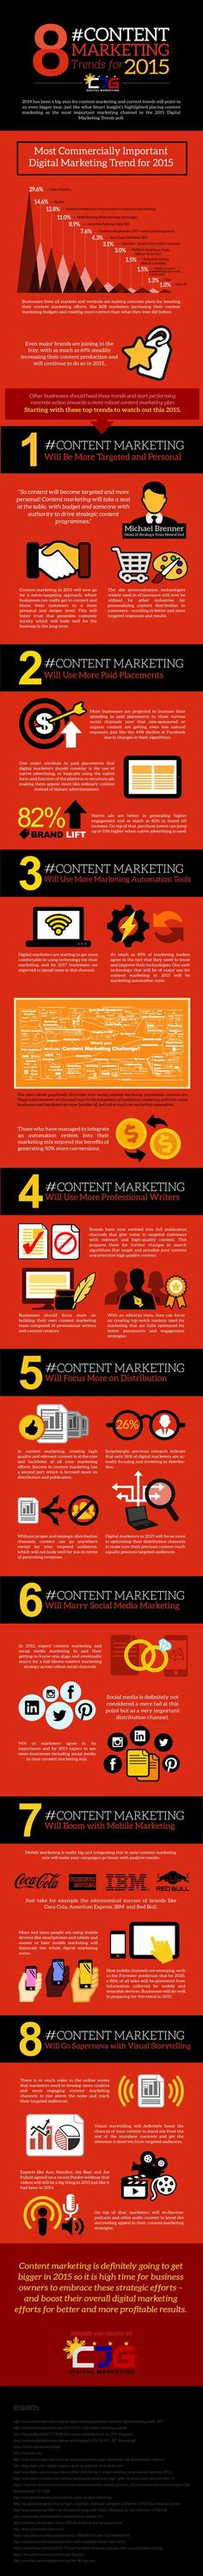 8 Content Marketing Trends for 2015 #contentmarketing #branding #infographic http://www.business2community.com/infographics/8-content-marketing-trends-watch-2015-infographic-01139640?utm_content=buffercf5a1&utm_medium=social&utm_source=pinterest.com&utm_campaign=buffer via Wade Harman